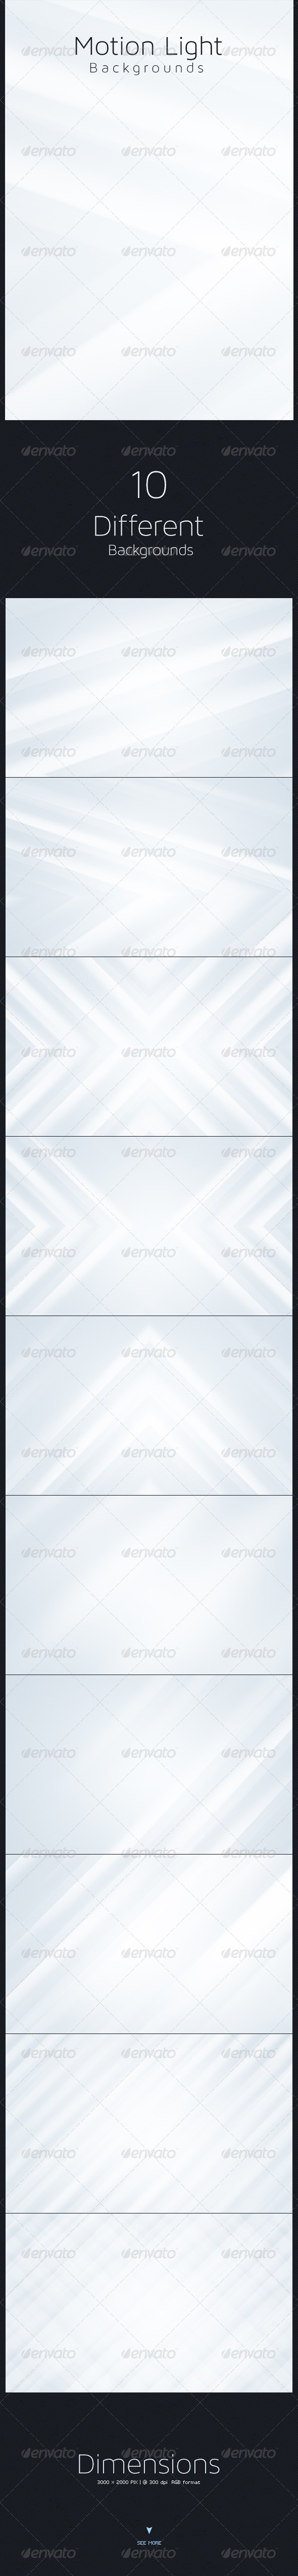 GraphicRiver Motion Light Backgrounds 5501365